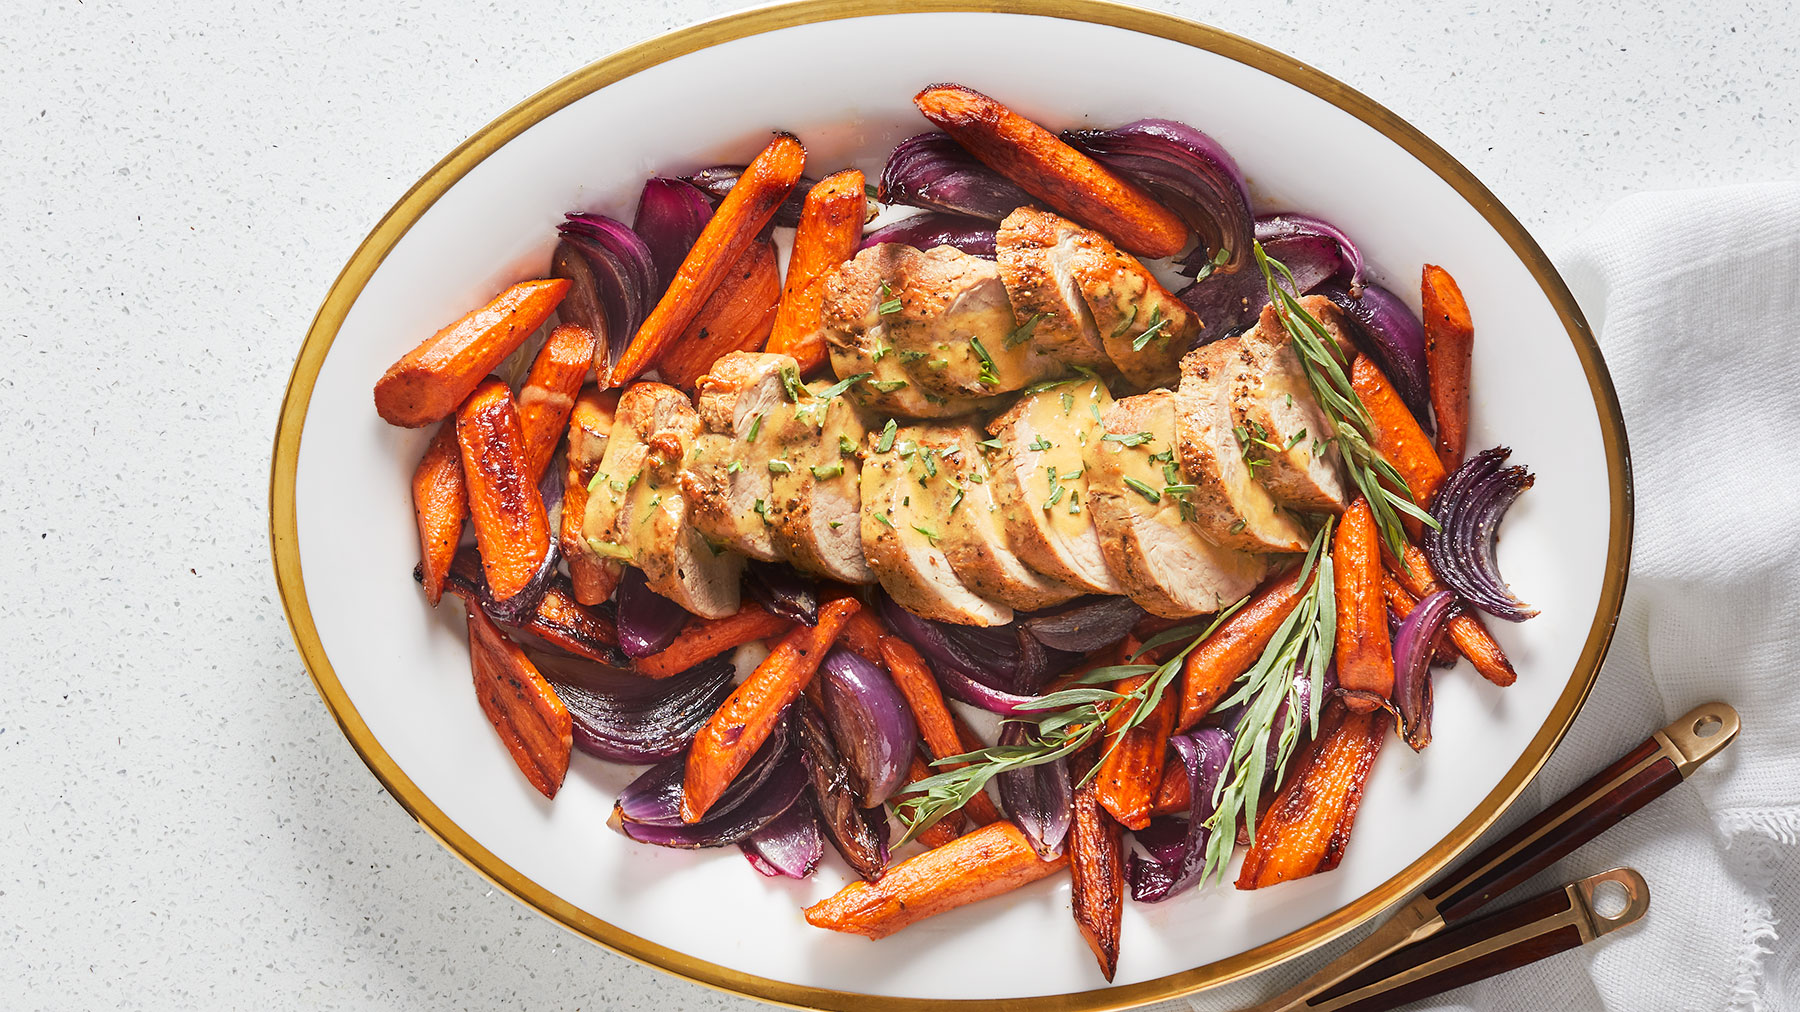 Roast Pork With Carrots and Tarragon-Mustard Sauce